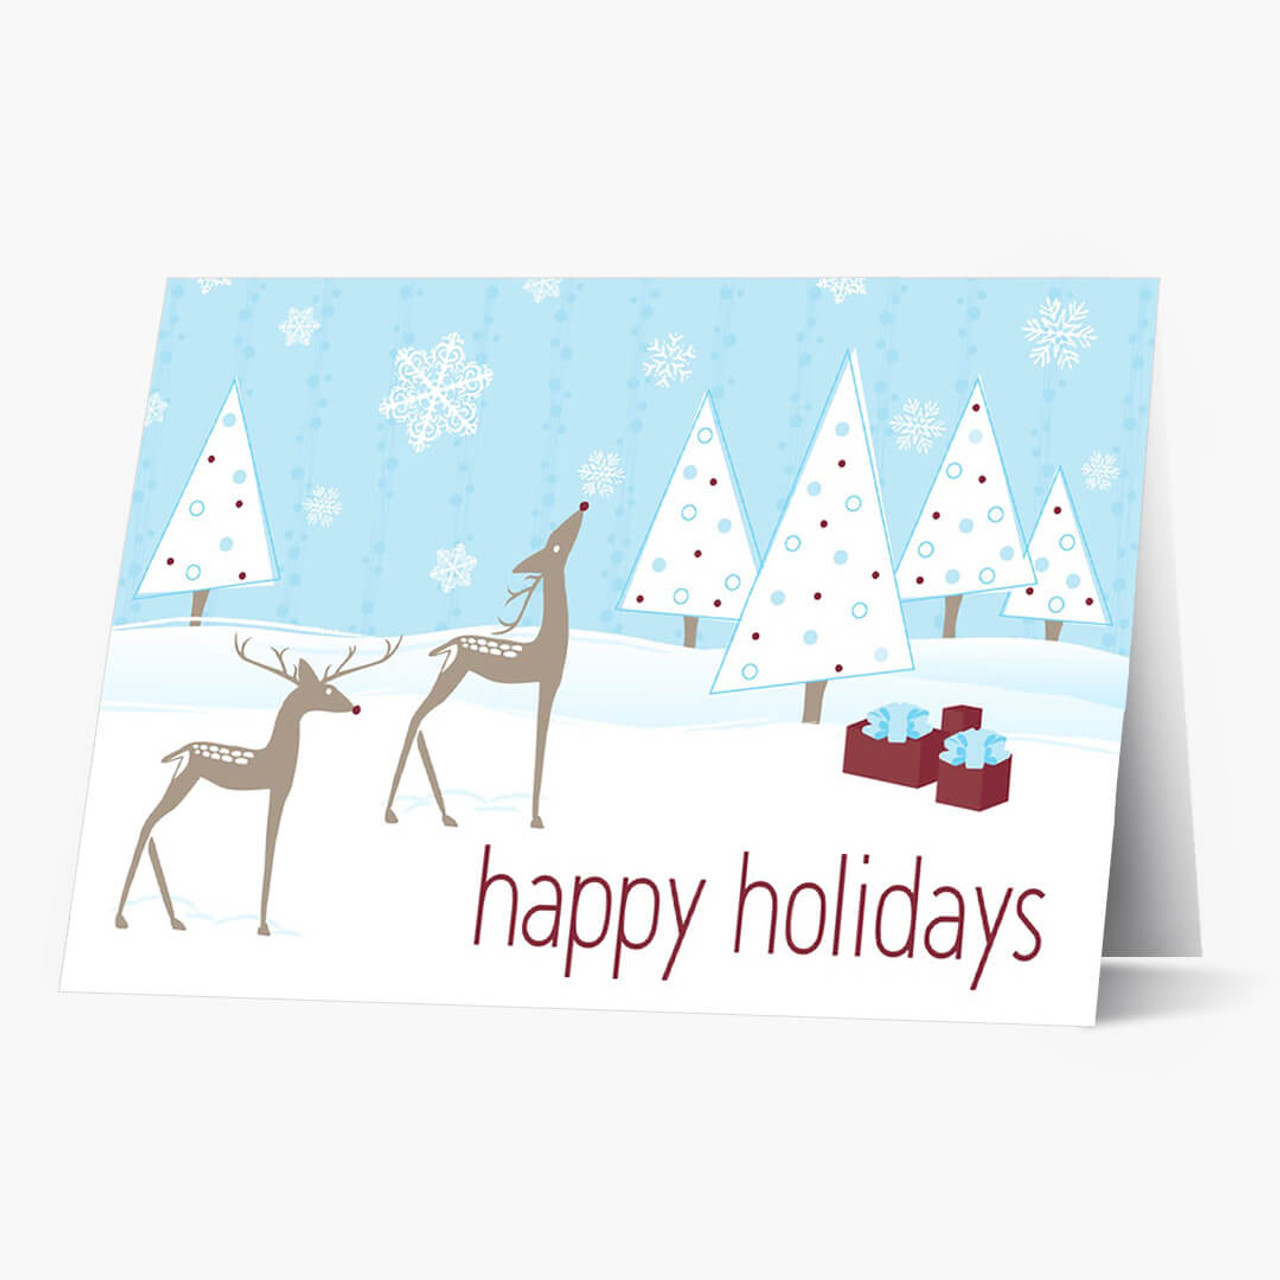 Reindeer Wishes Christmas Card